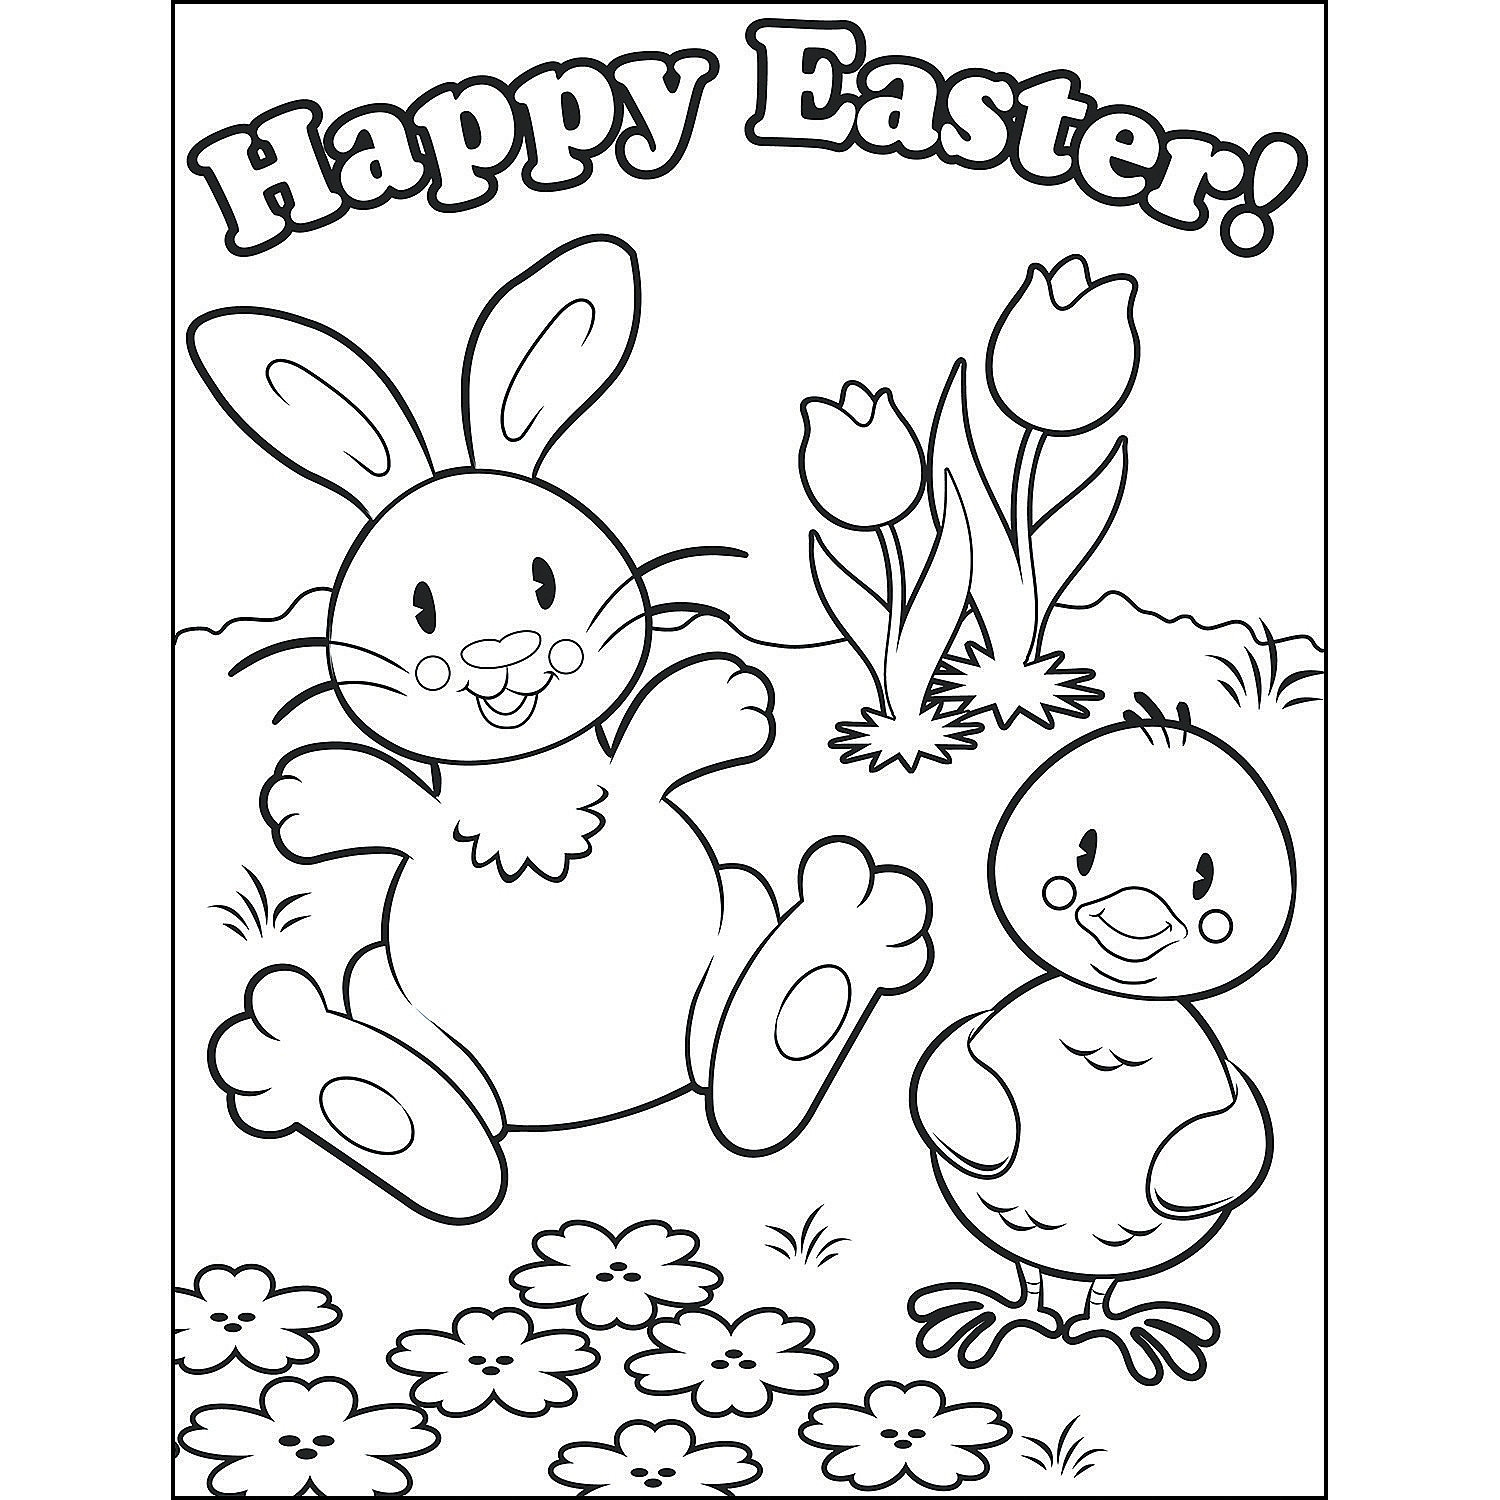 oriental trading coloring pages - easter coloring contest sheets a2 37 1039 fltr